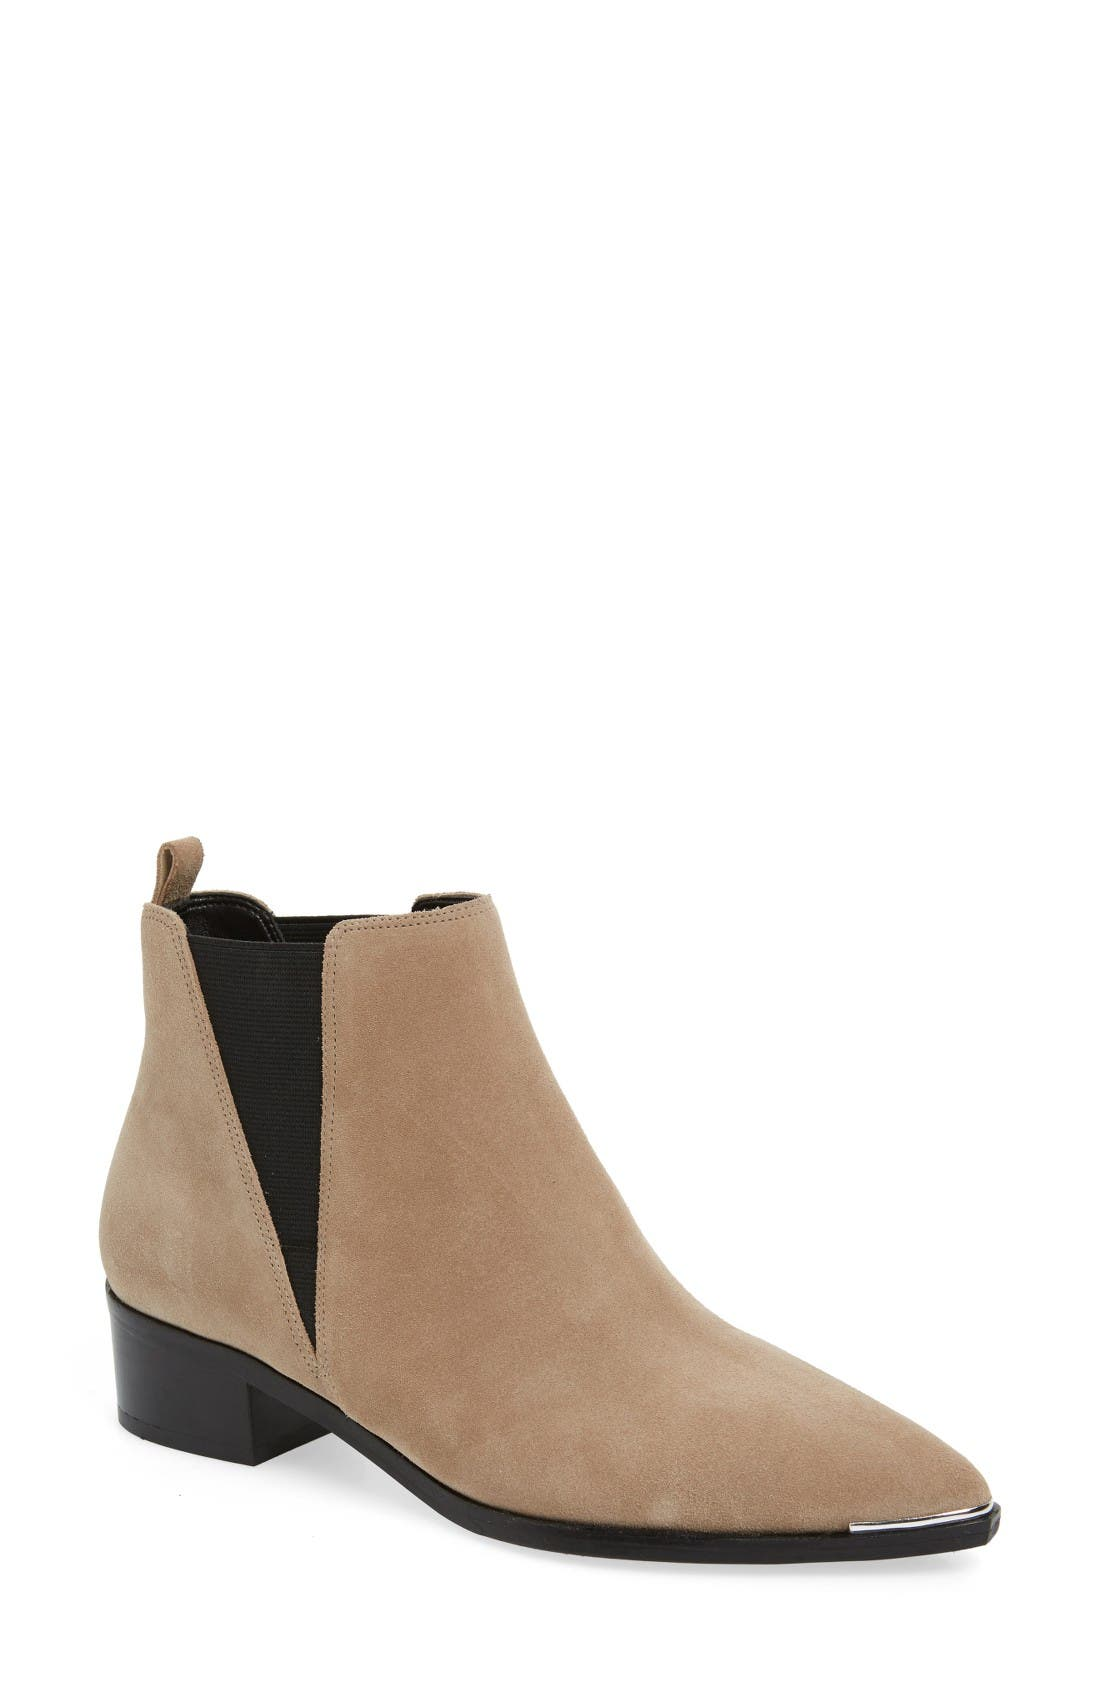 'Yale' Chelsea Boot,                         Main,                         color, Medium Natural Suede